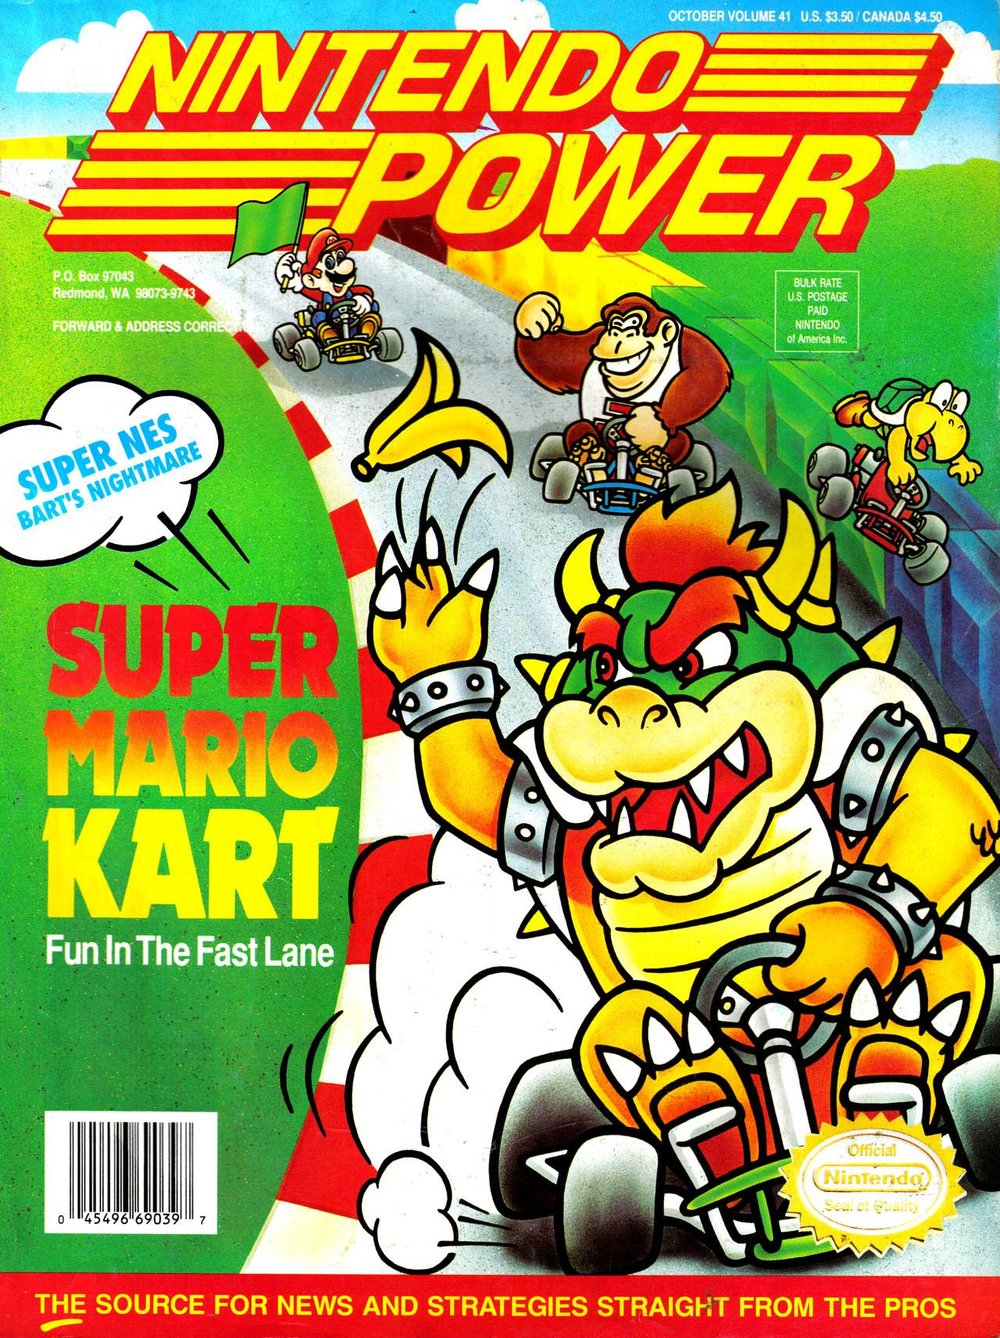 NINTENDO POWER VOLUME: 41   Nintendo Power V41   is the October   1992   issue of    Nintendo Power   magazine. It featured    Super Mario Kart    on it's cover.